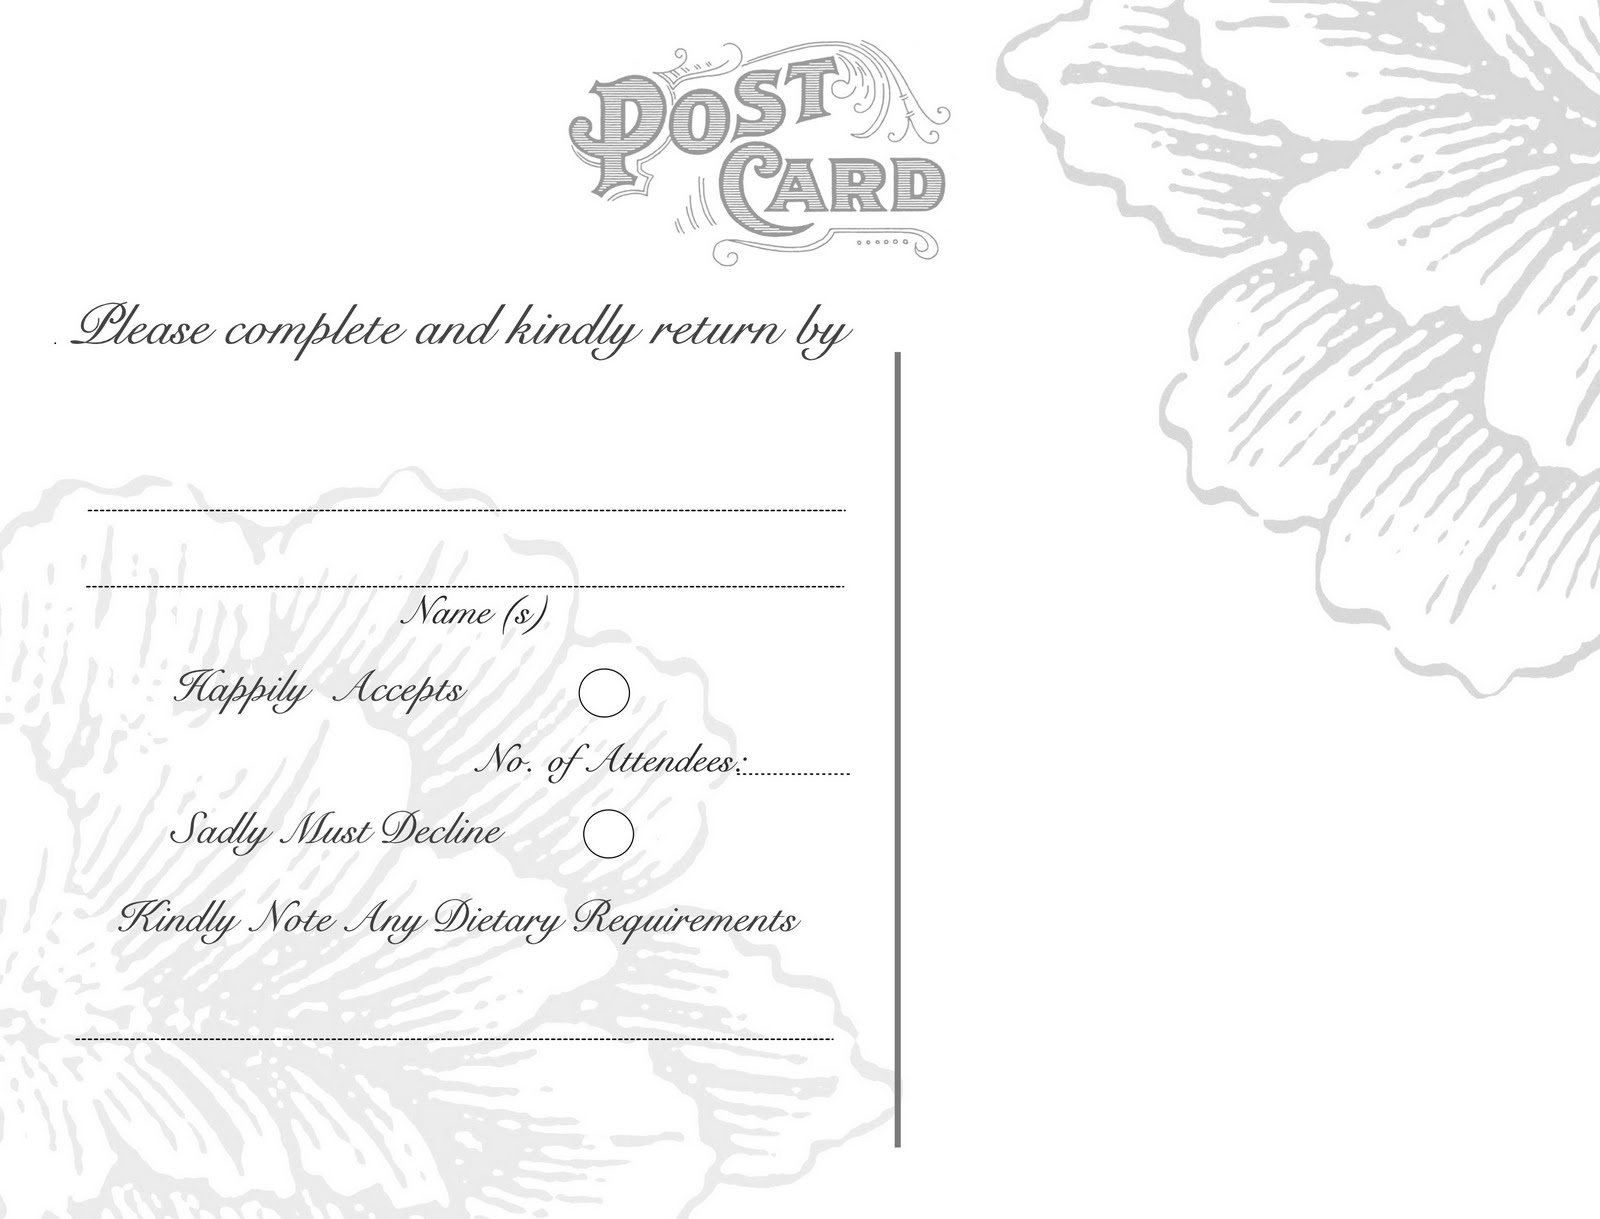 omg my diy wedding free vintage postcard back peony rsvp templates